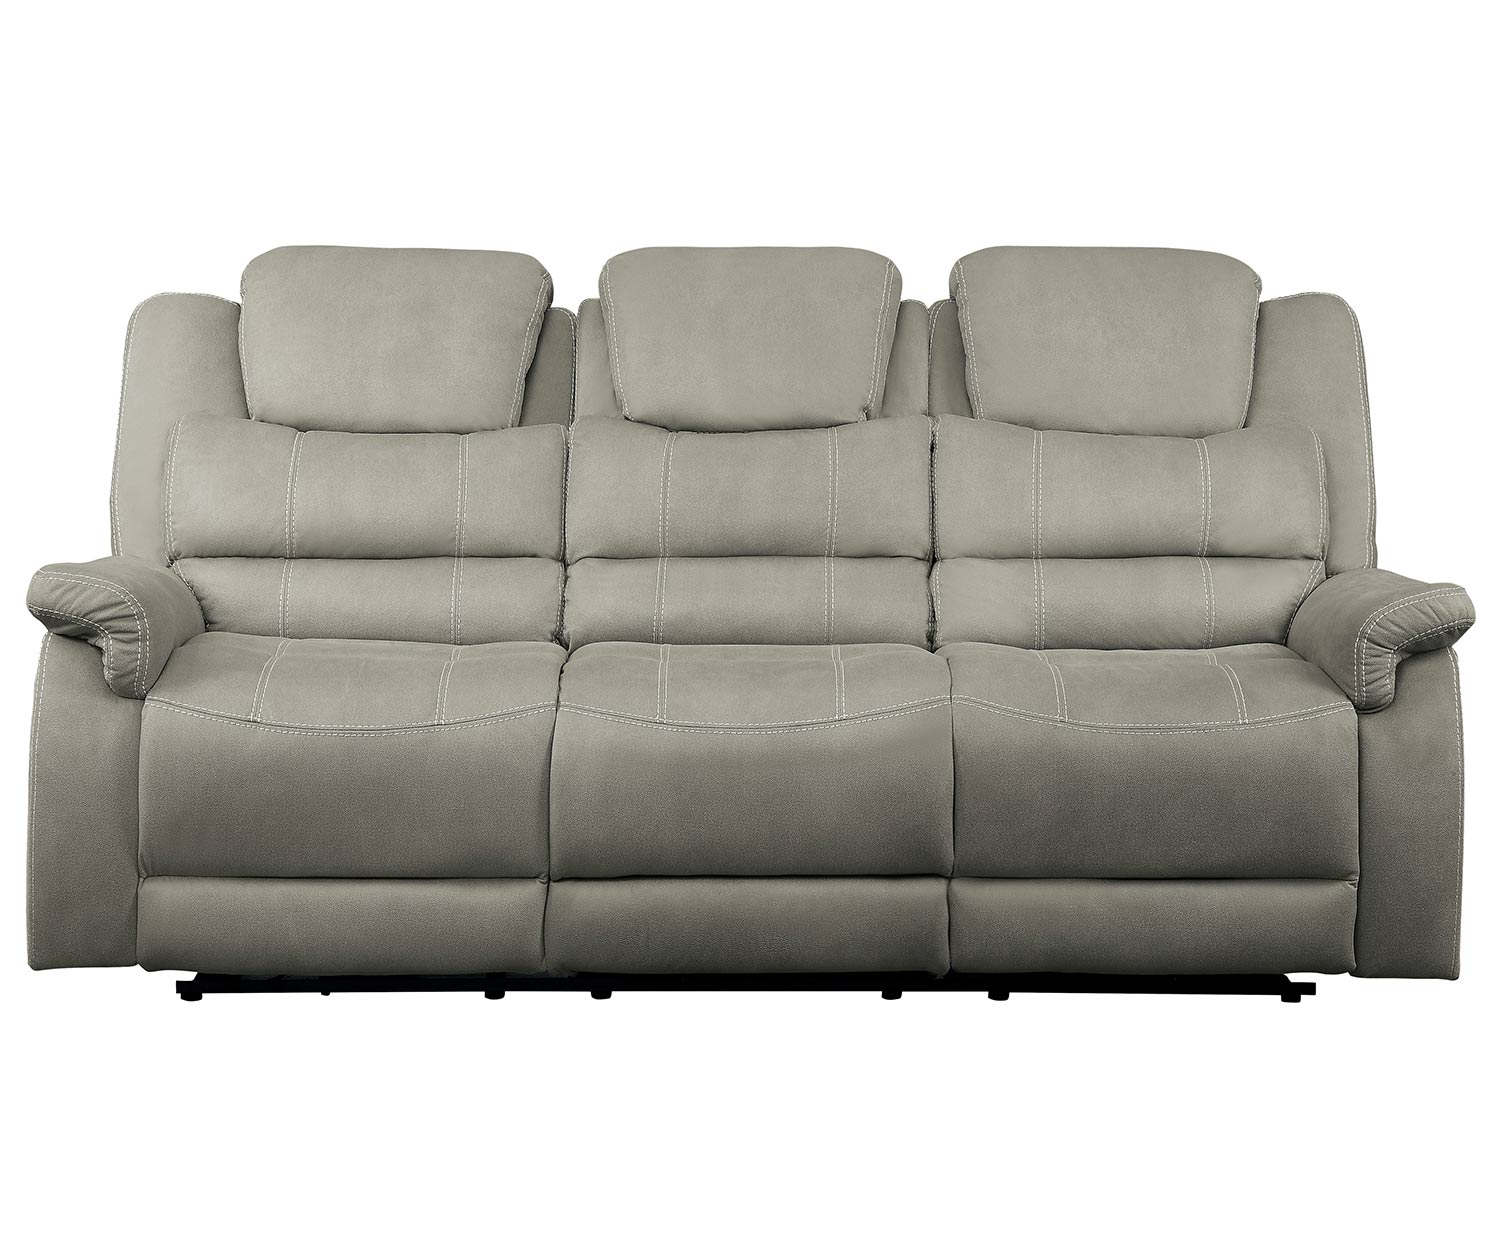 Homelegance Shola Power Reclining Sofa Set - Gray